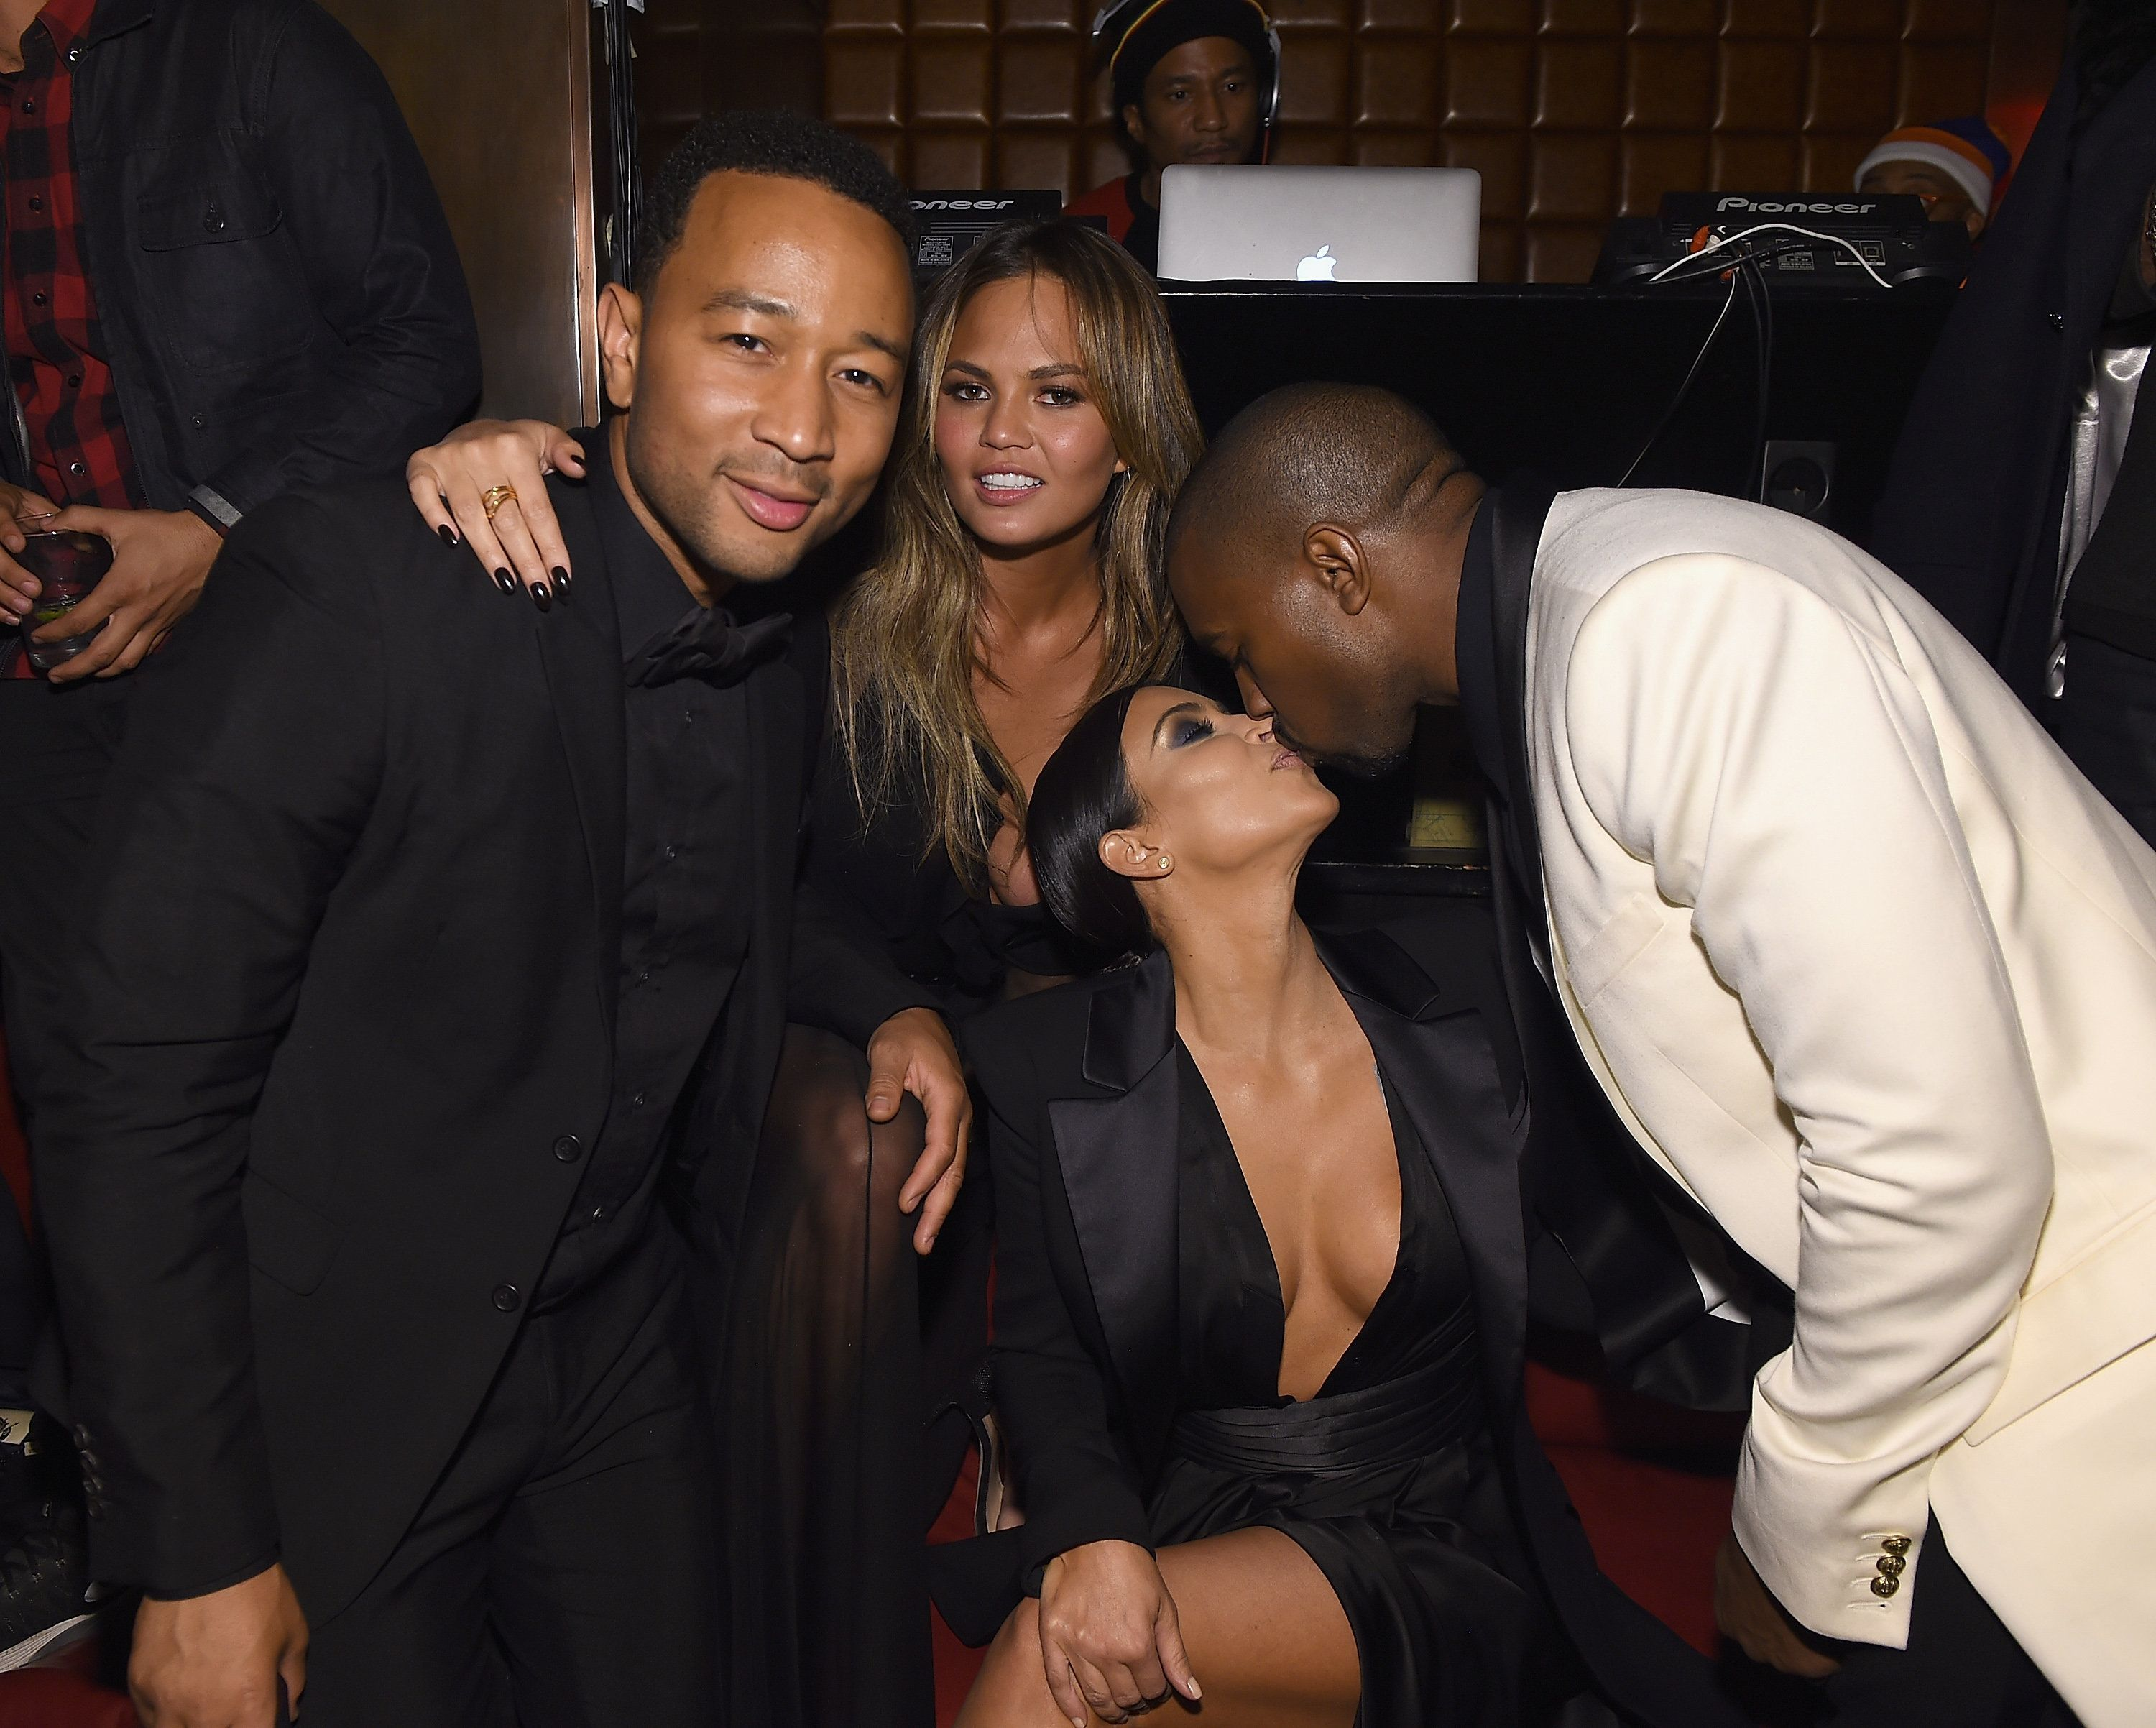 NEW YORK, NY - JANUARY 08: (EXCLUSIVE COVERAGE)  John Legend, Chrissy Teigen,  Kim Kardashian and Kanye West attend John Legend Celebrates His Birthday And The 10th Anniversary Of His Debut Album 'Get Lifted' at CATCH NYC on January 8, 2015 in New York City.  (Photo by Dimitrios Kambouris/Getty Images for EMM Group)